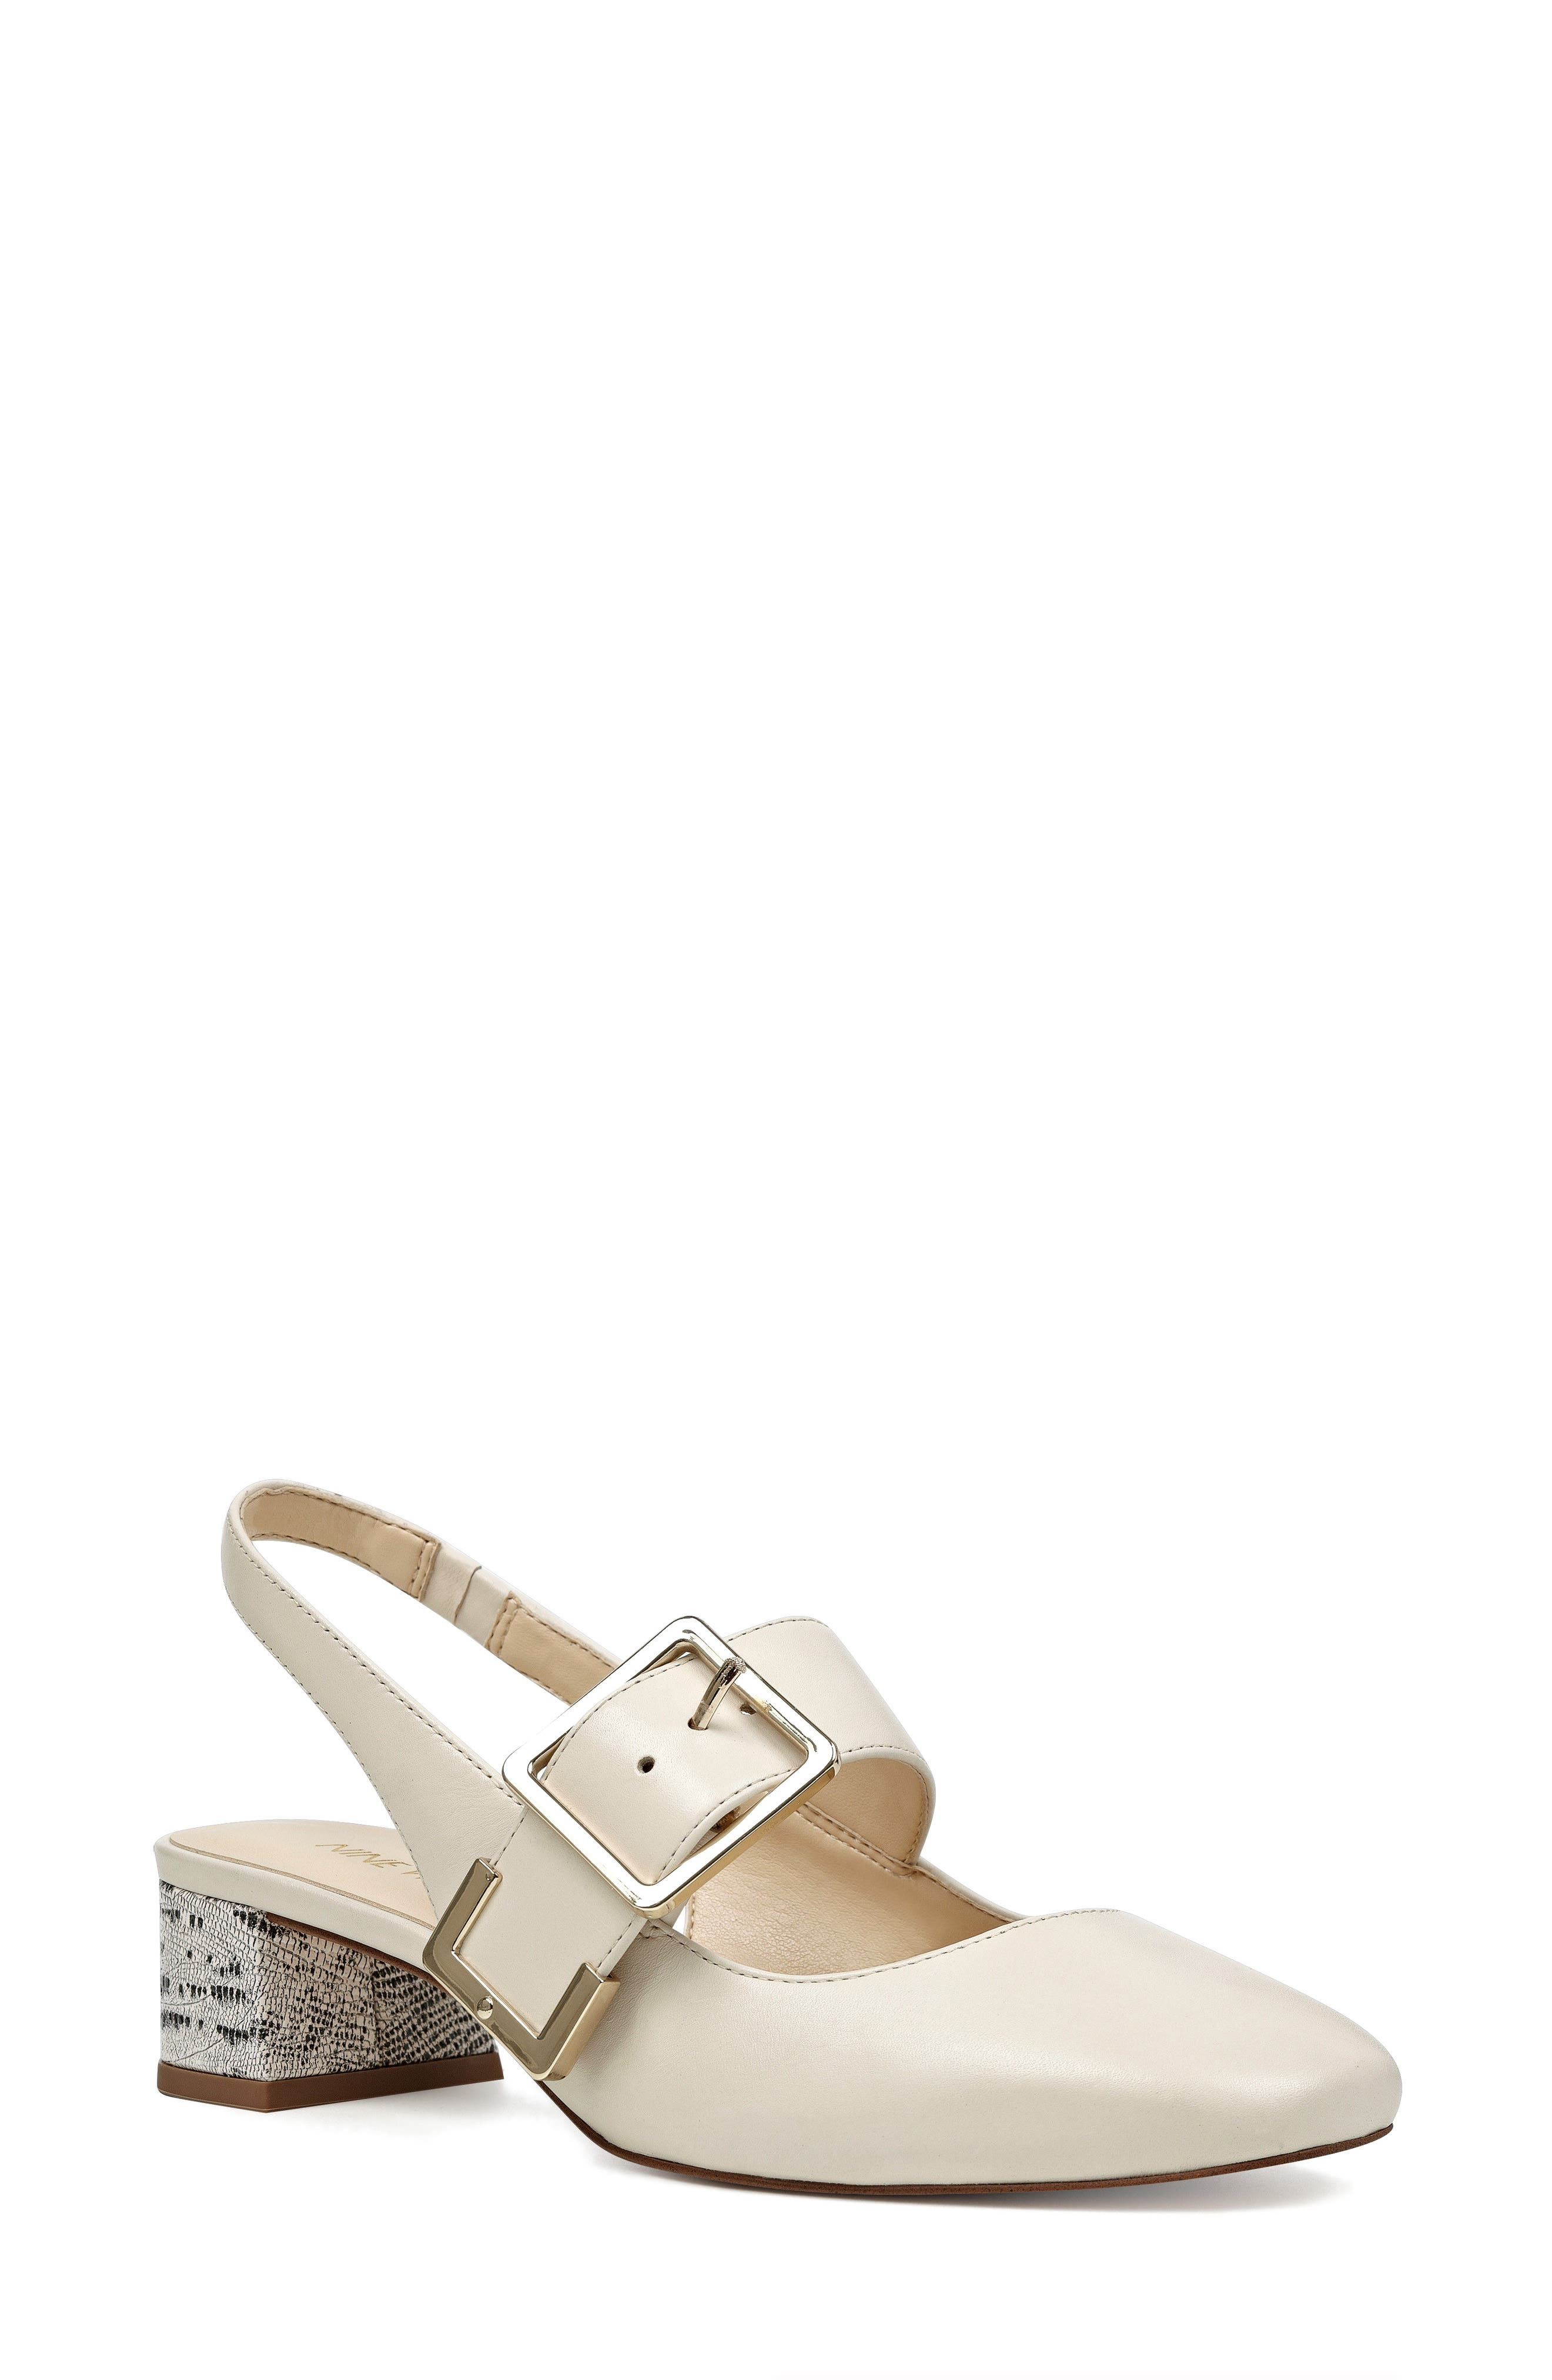 Wendor Slingback Pump,                         Main,                         color, Off White Leather